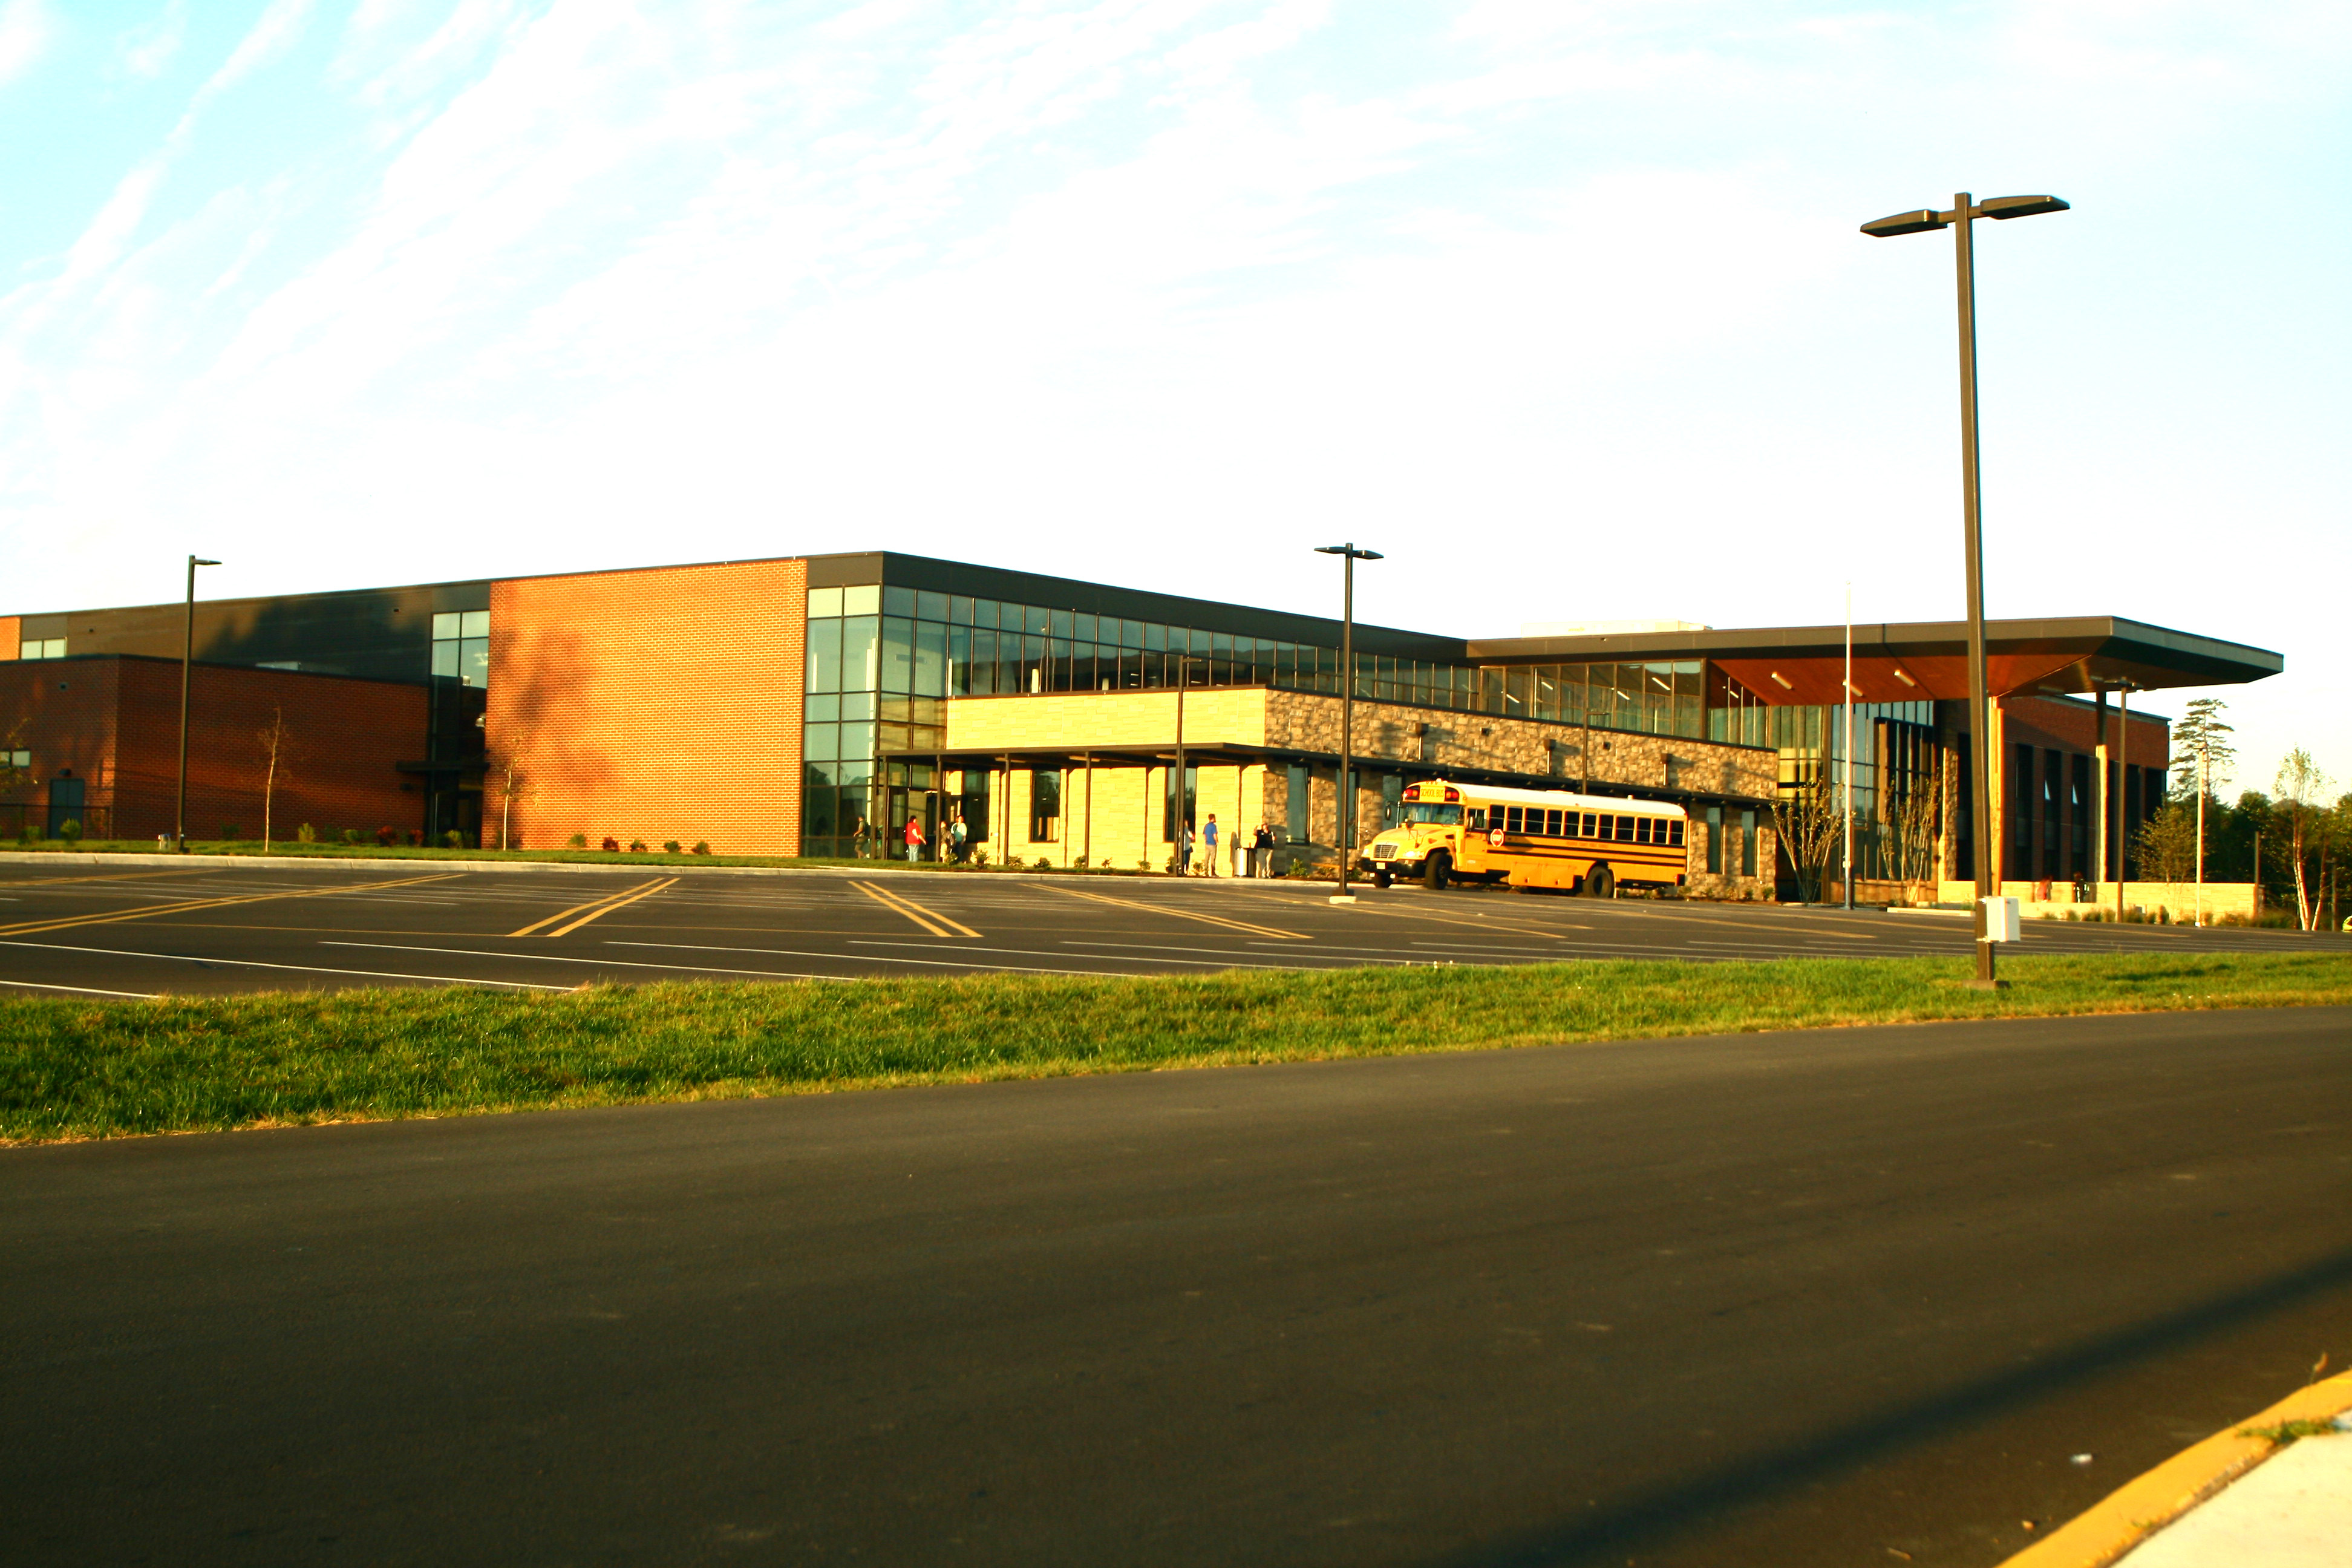 Frederick County Middle School